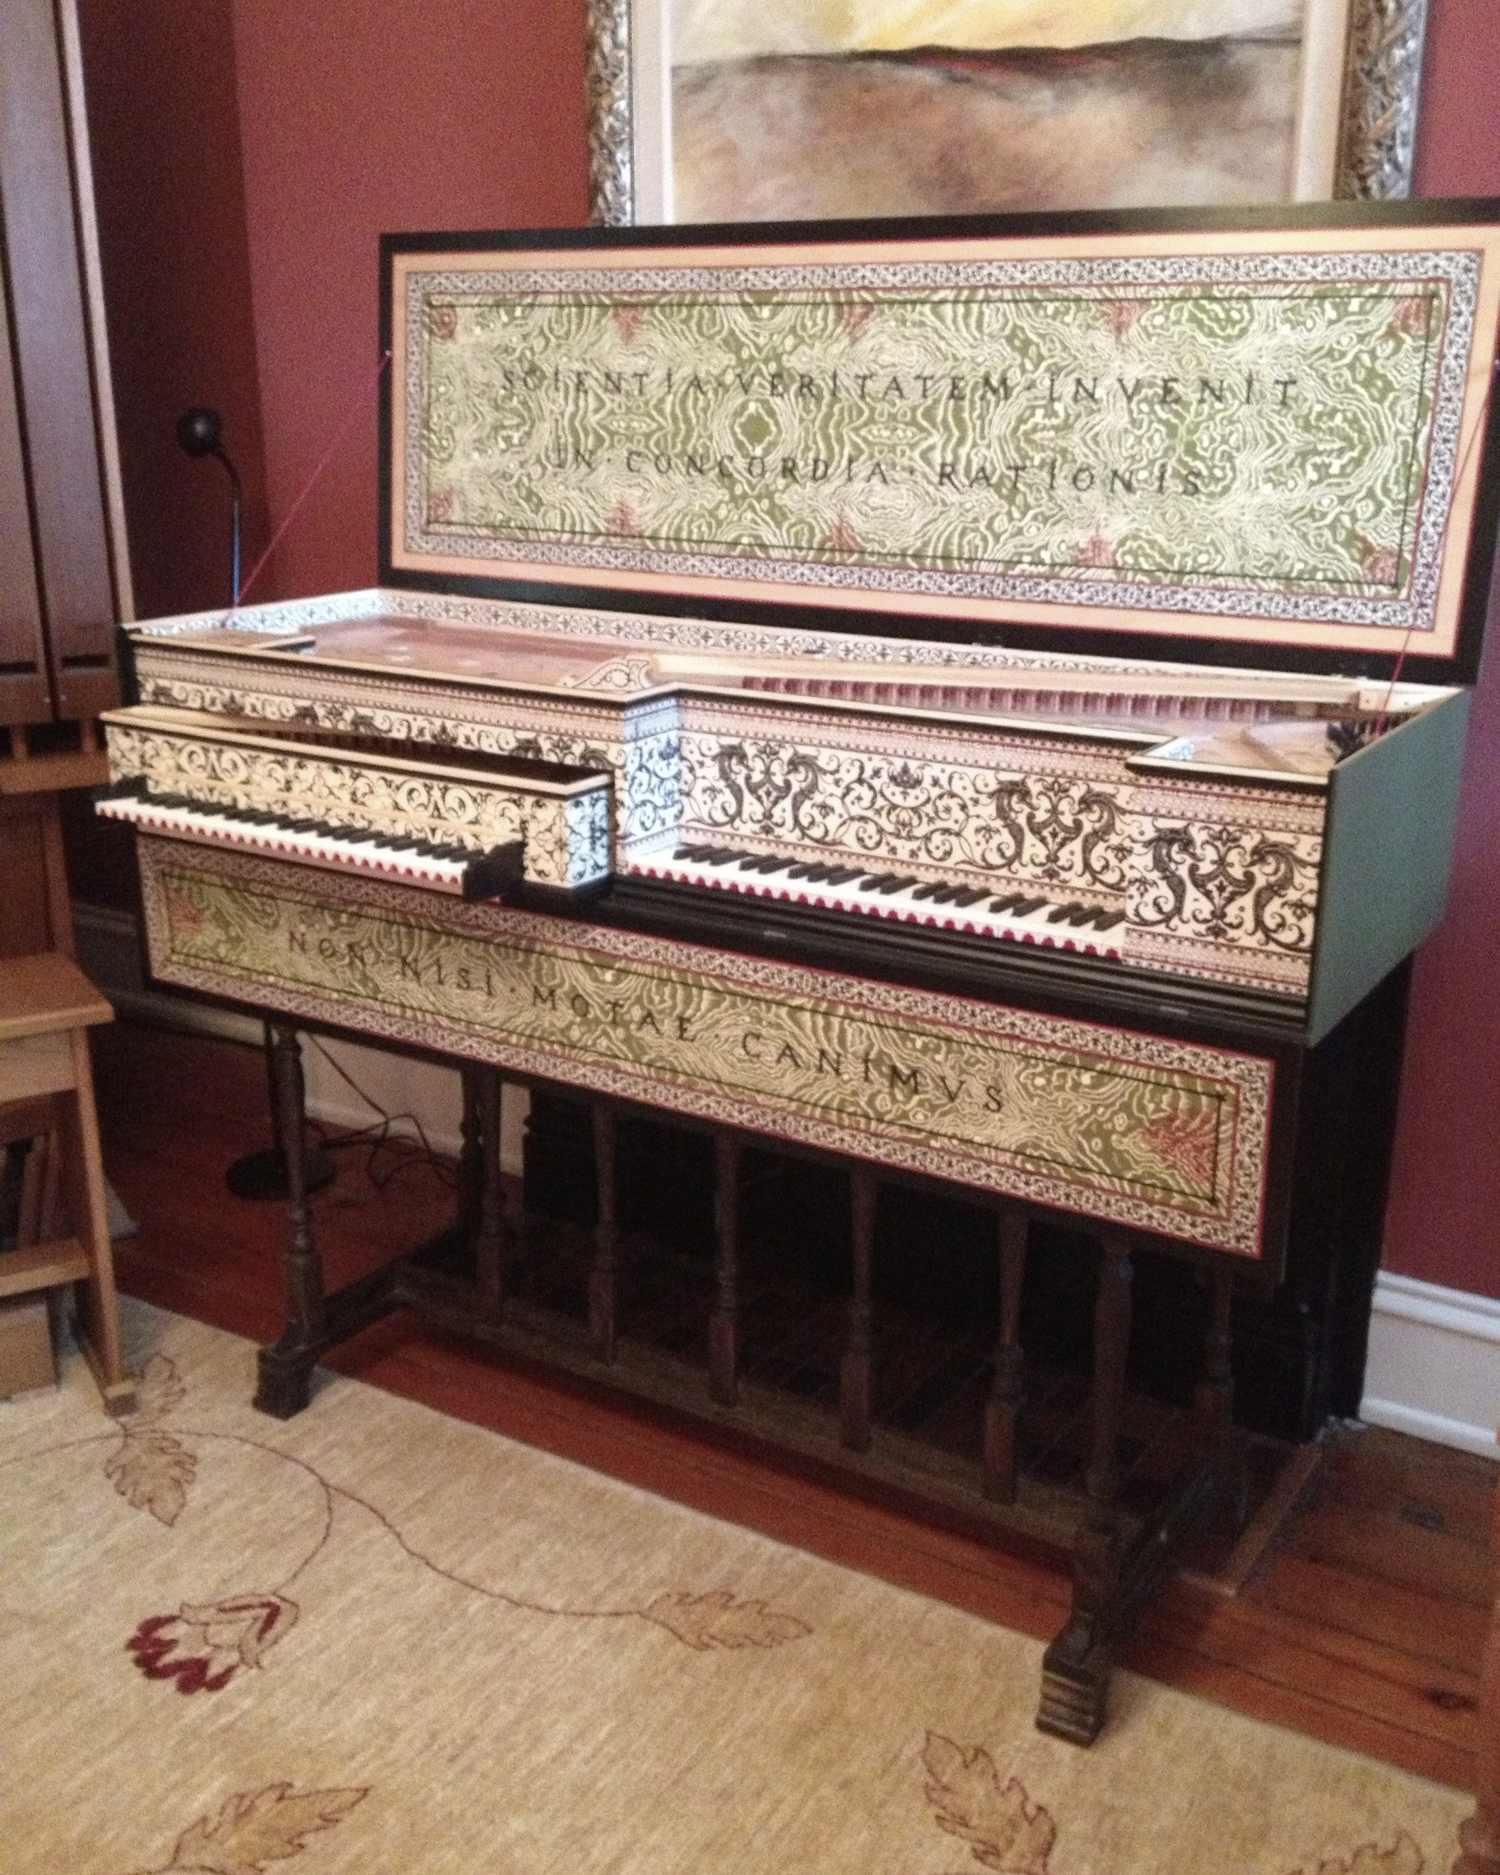 Mother and Child Virginal built by James Campbell, a master early keyboard builder in Newport, Kentucky.